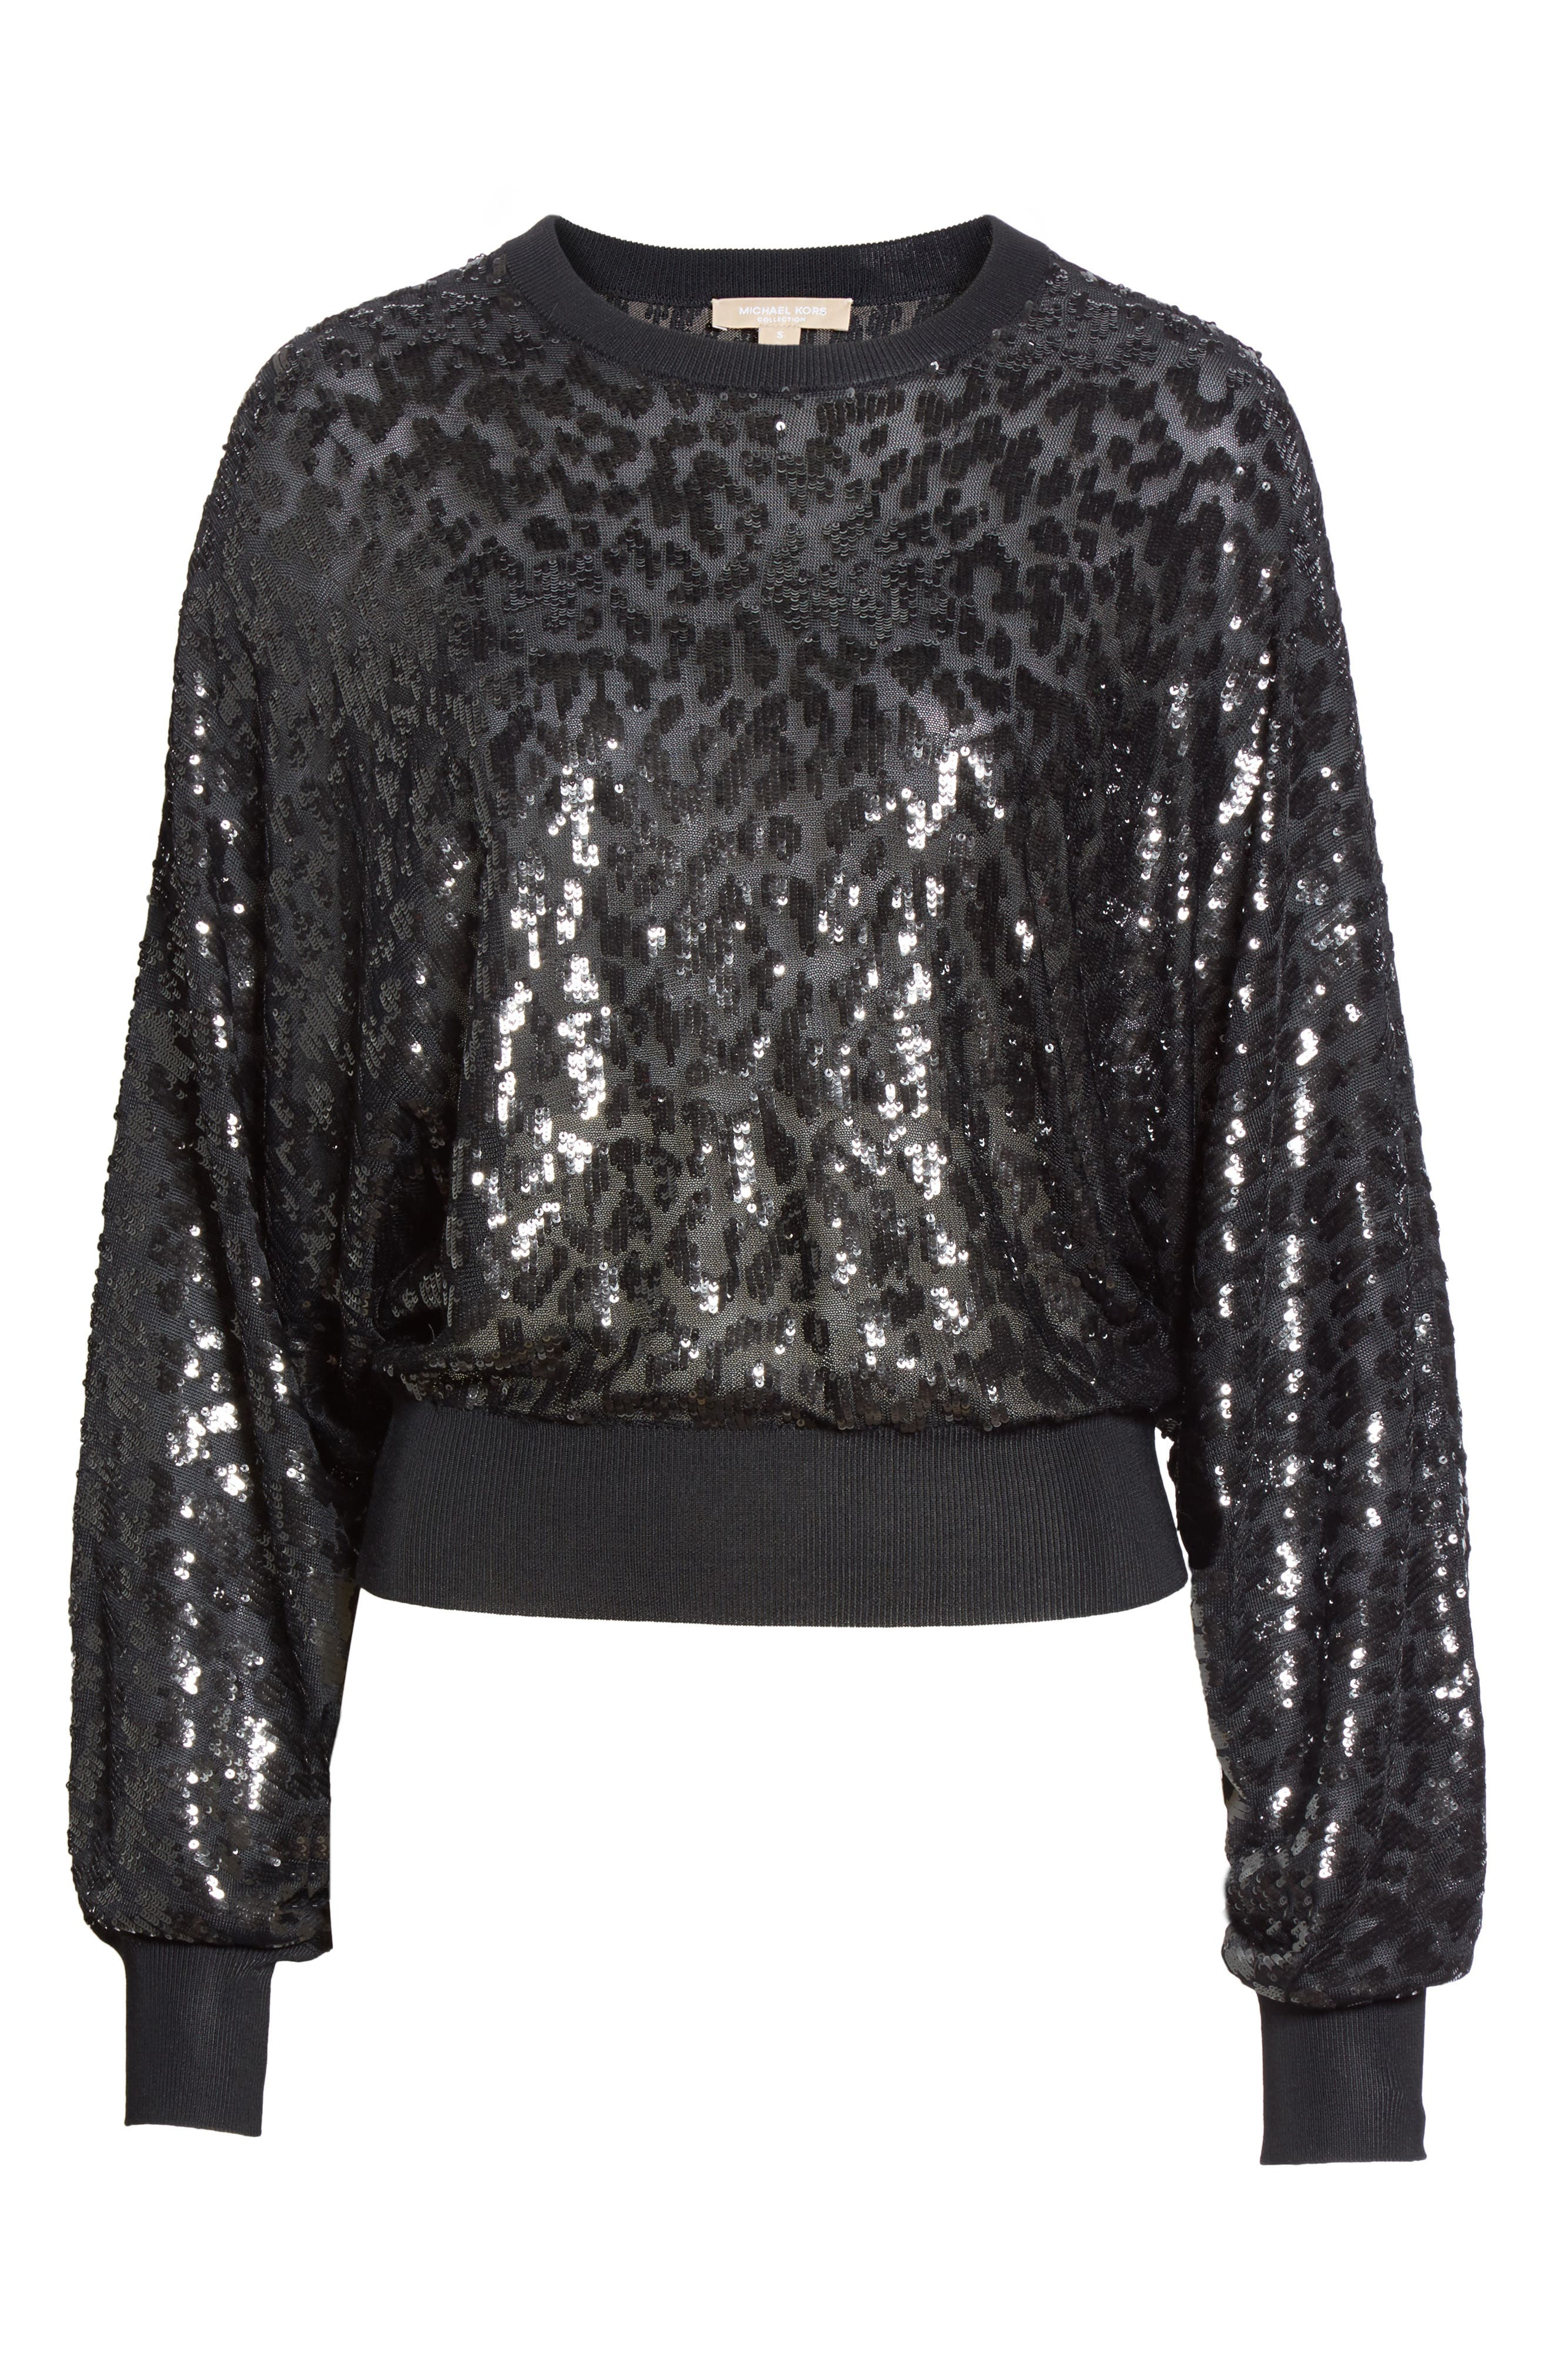 Sequined Tulle Leopard Sweater,                             Alternate thumbnail 7, color,                             Black/ Black